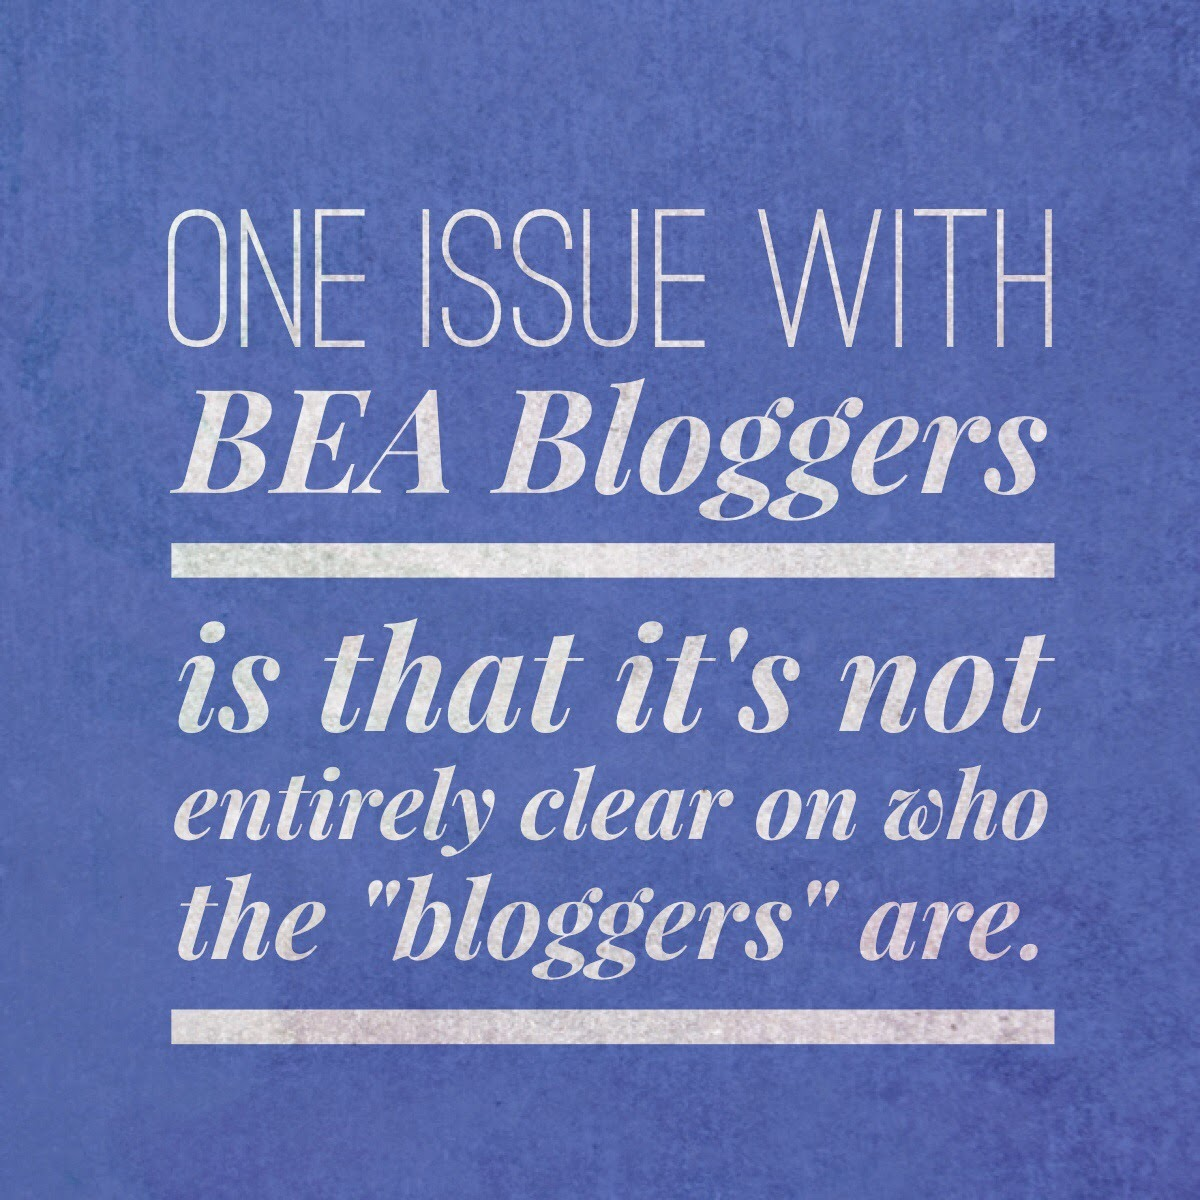 Who are the bloggers?